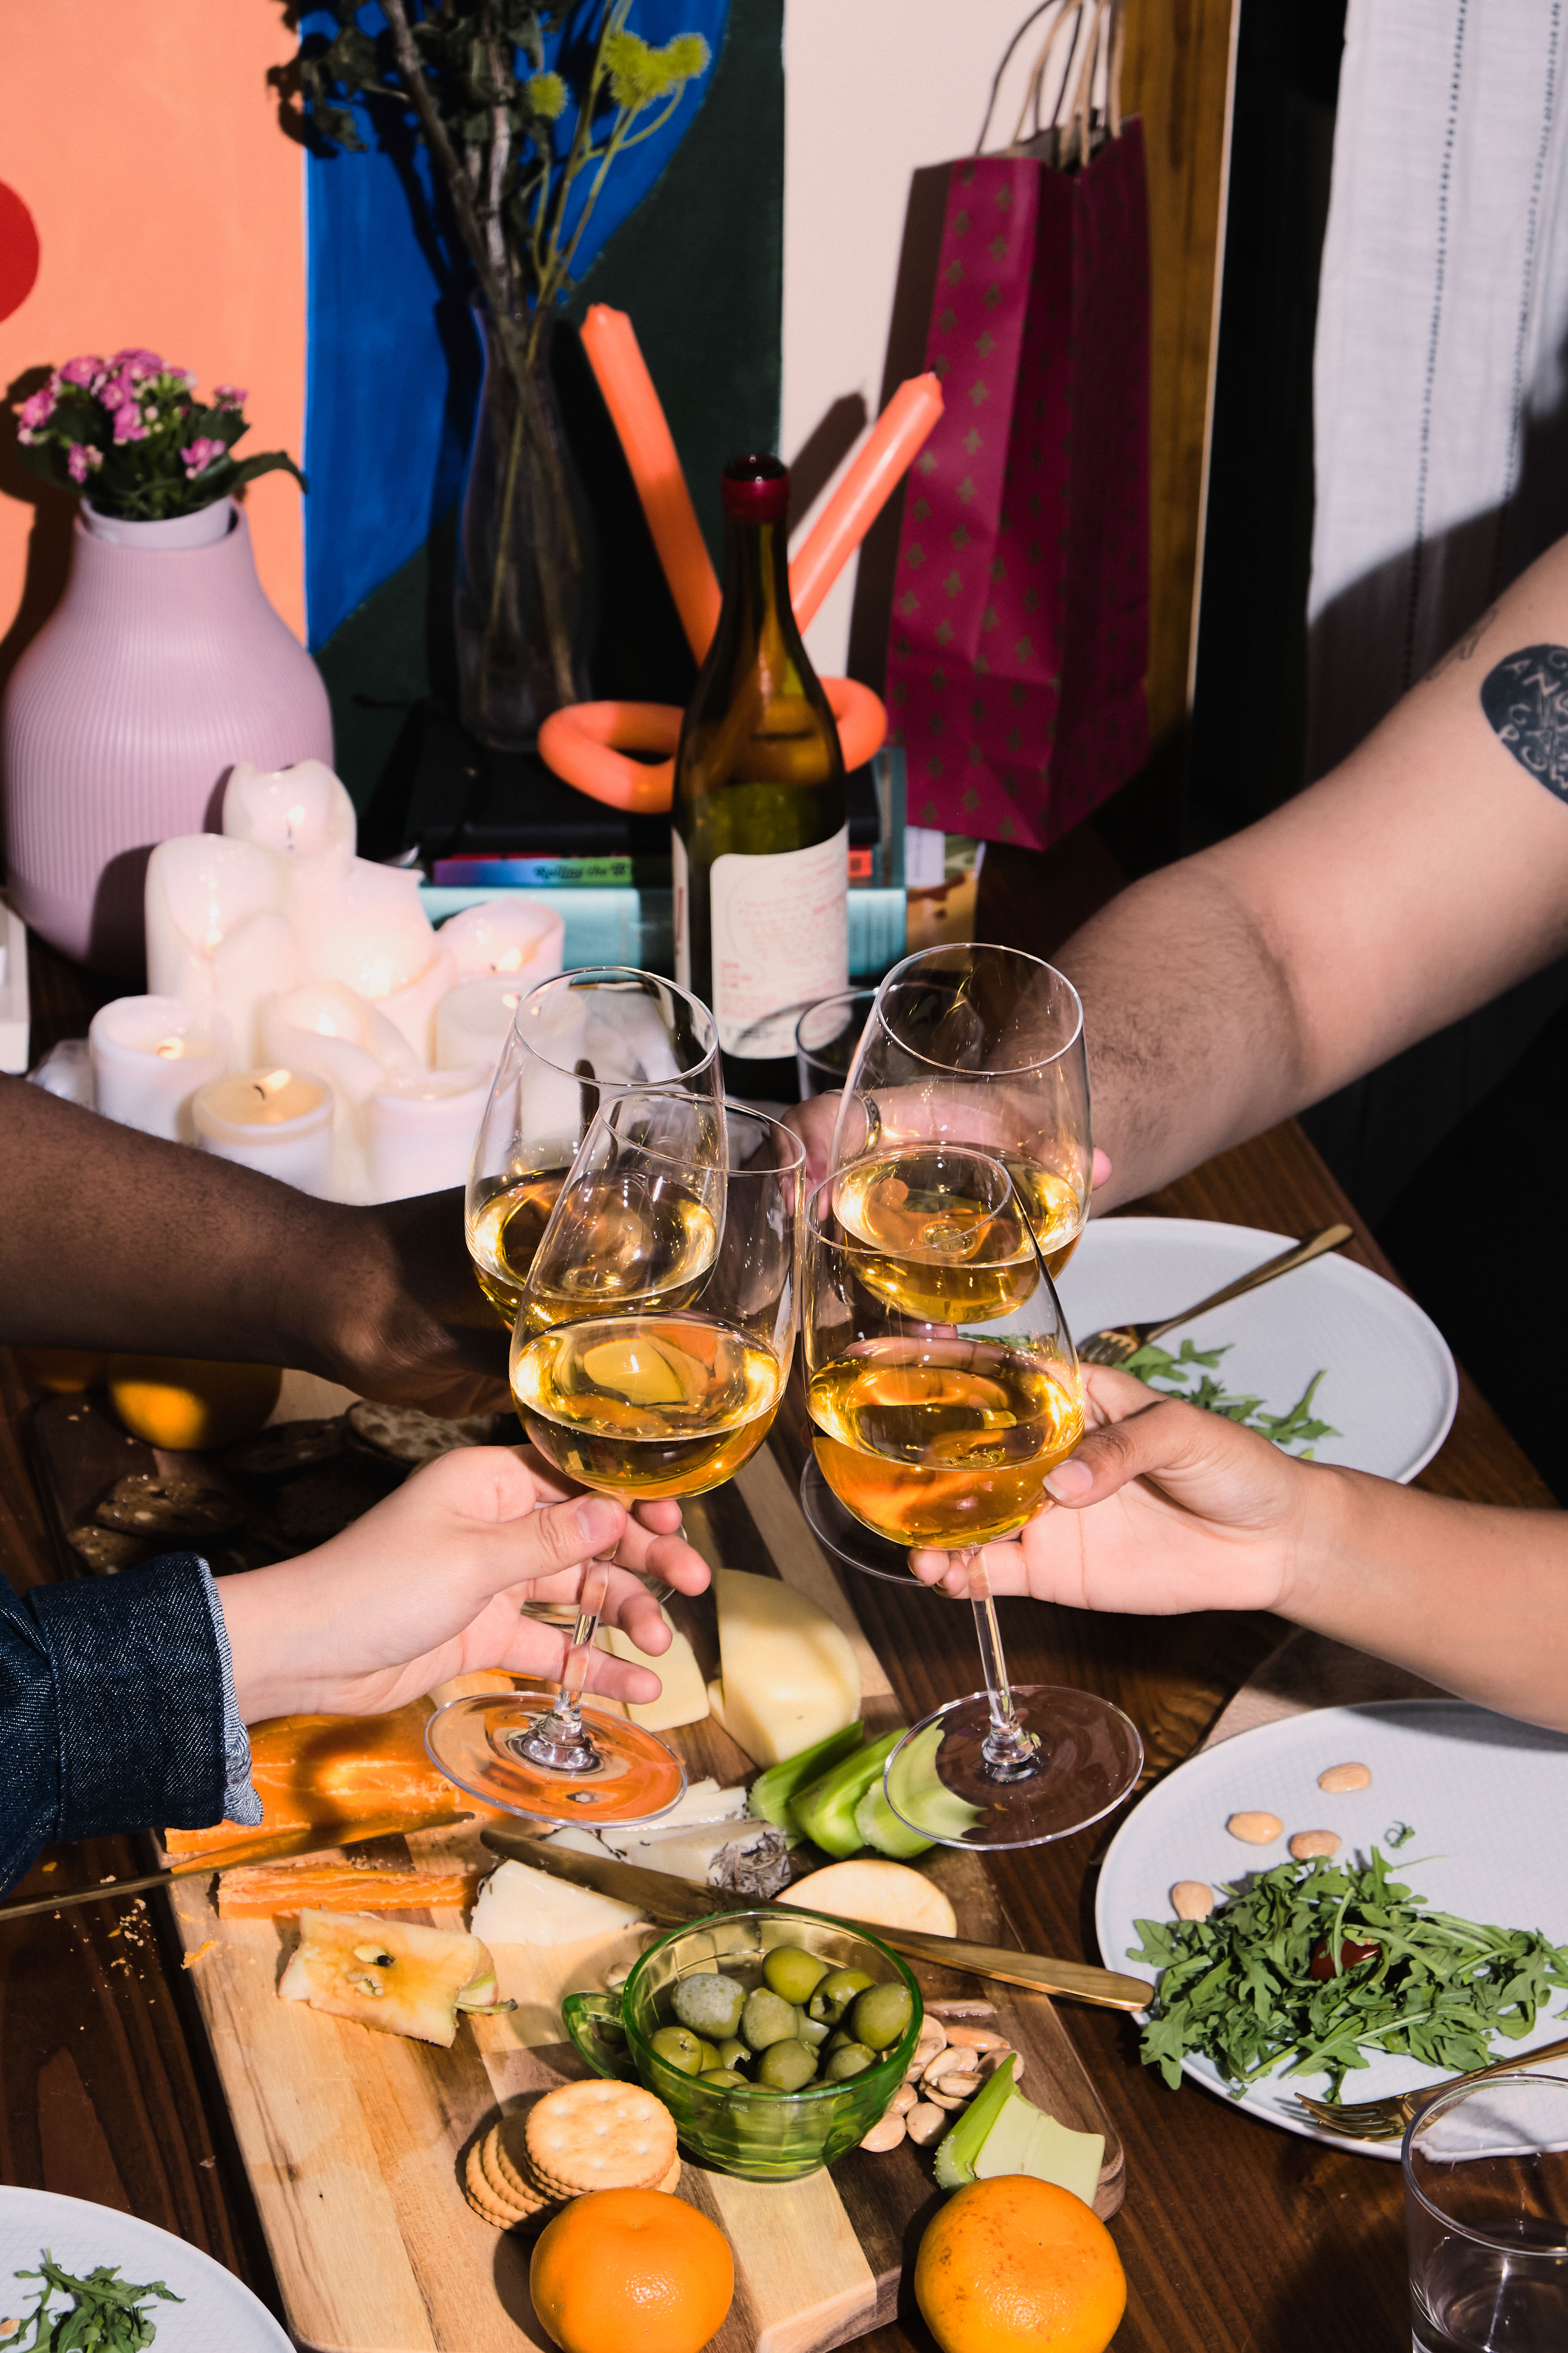 A group of friends of varying genders celebrating at a dinner party